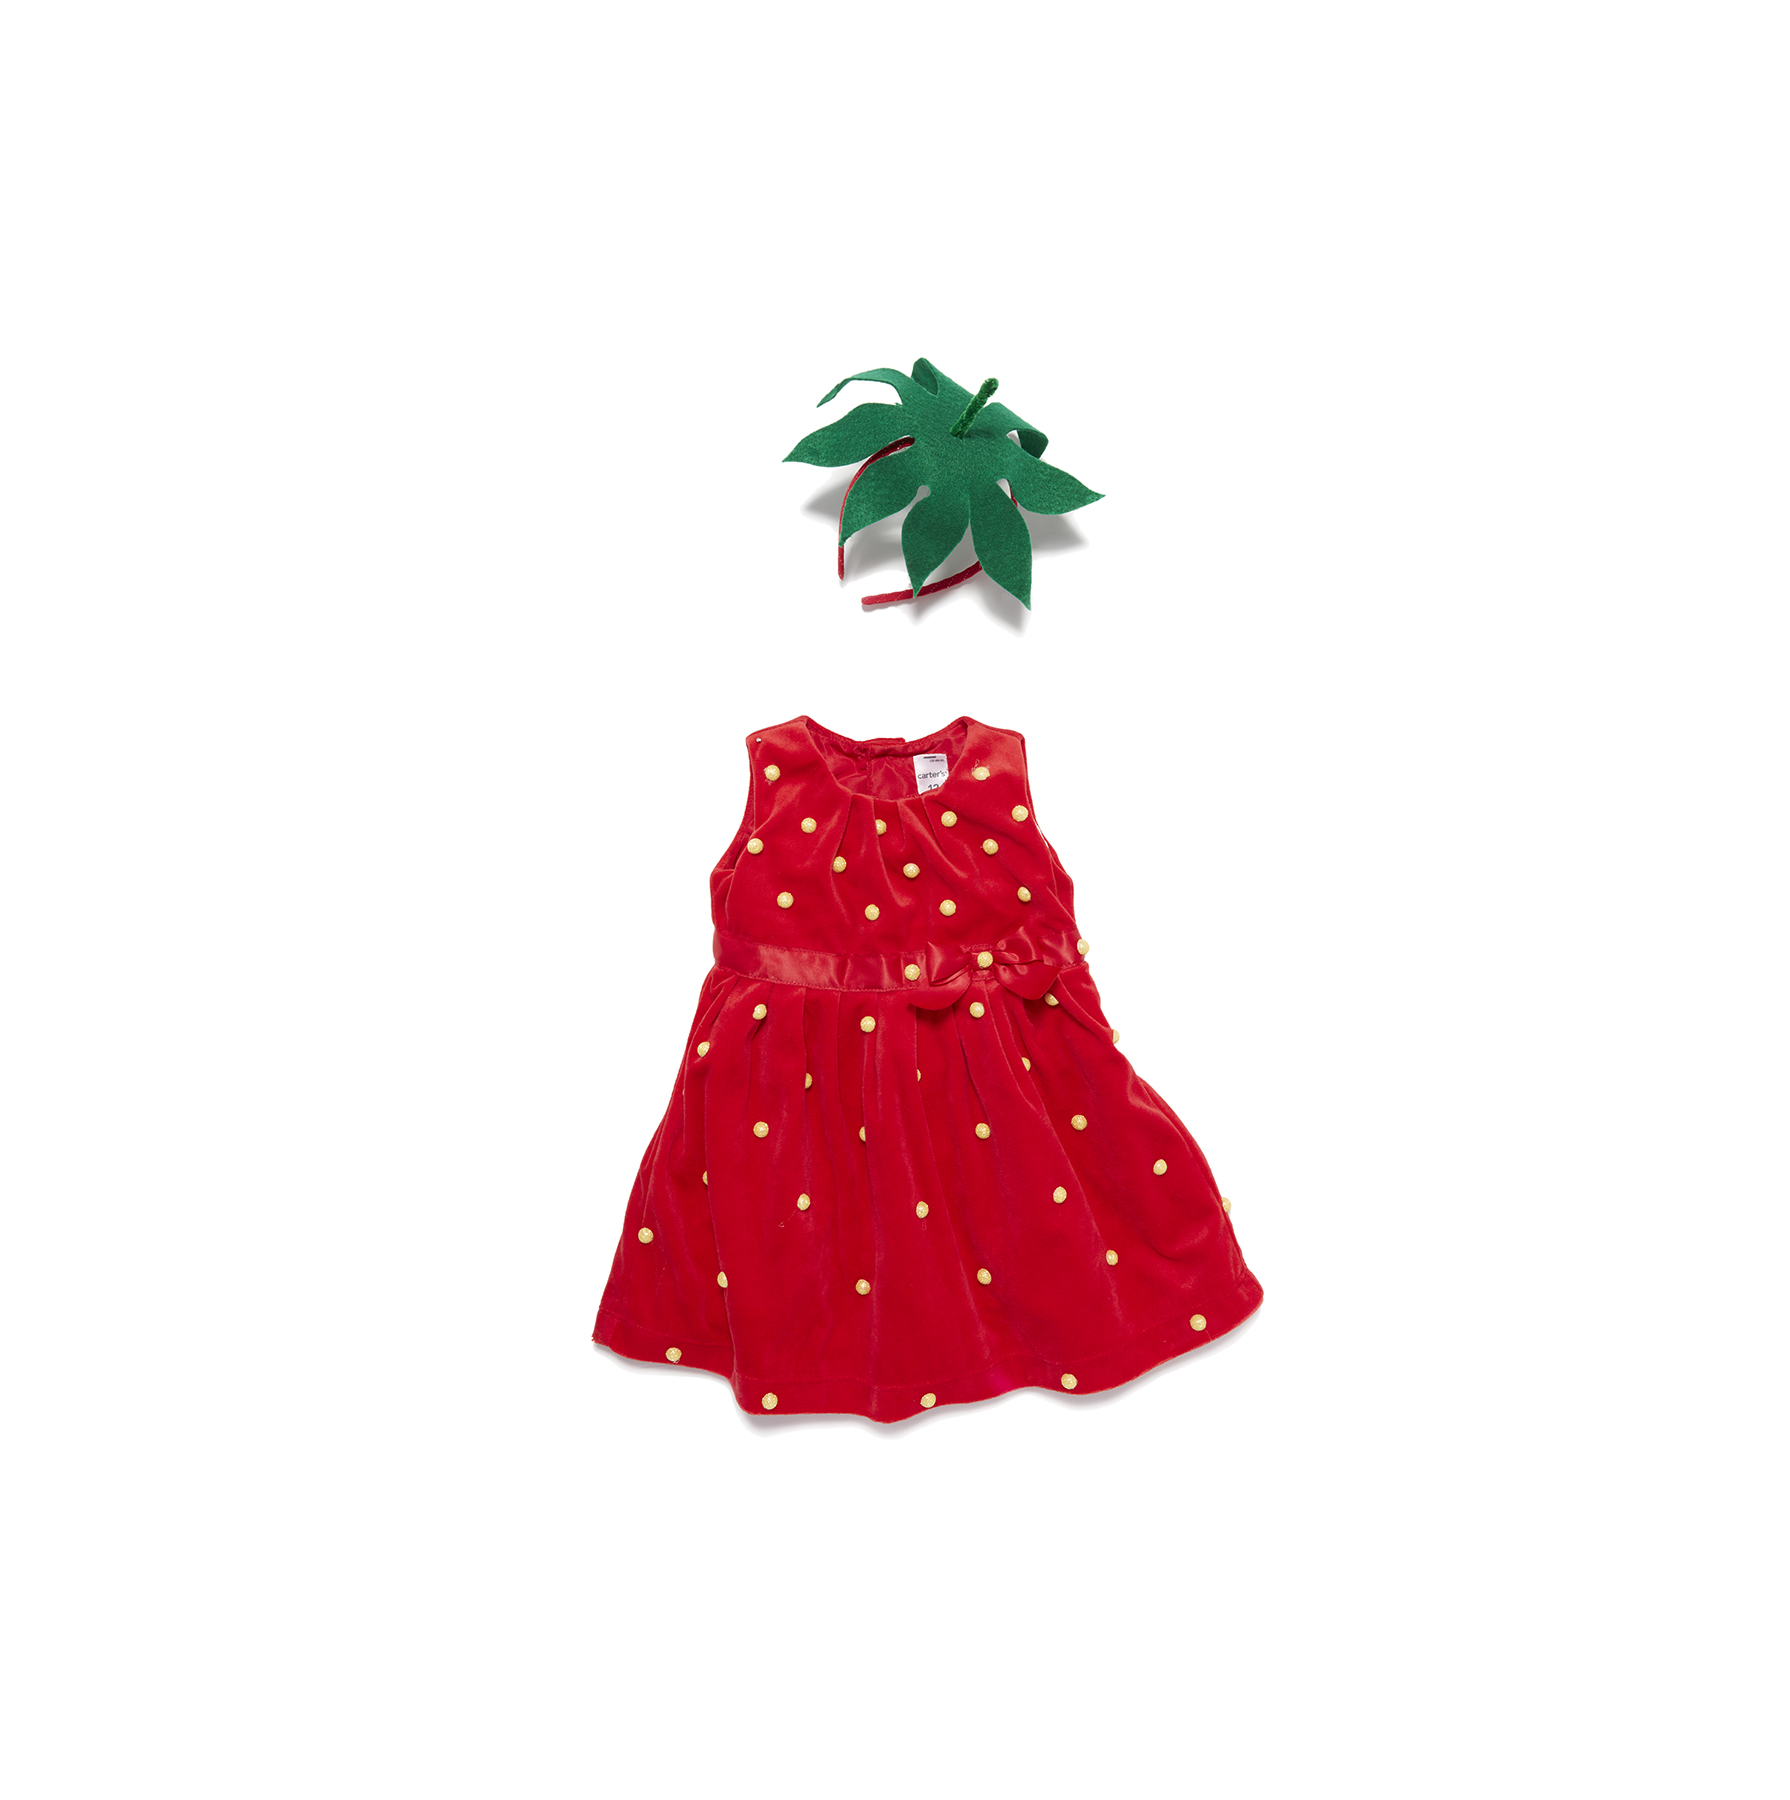 Group halloween costumes real simple diy strawberry costume solutioingenieria